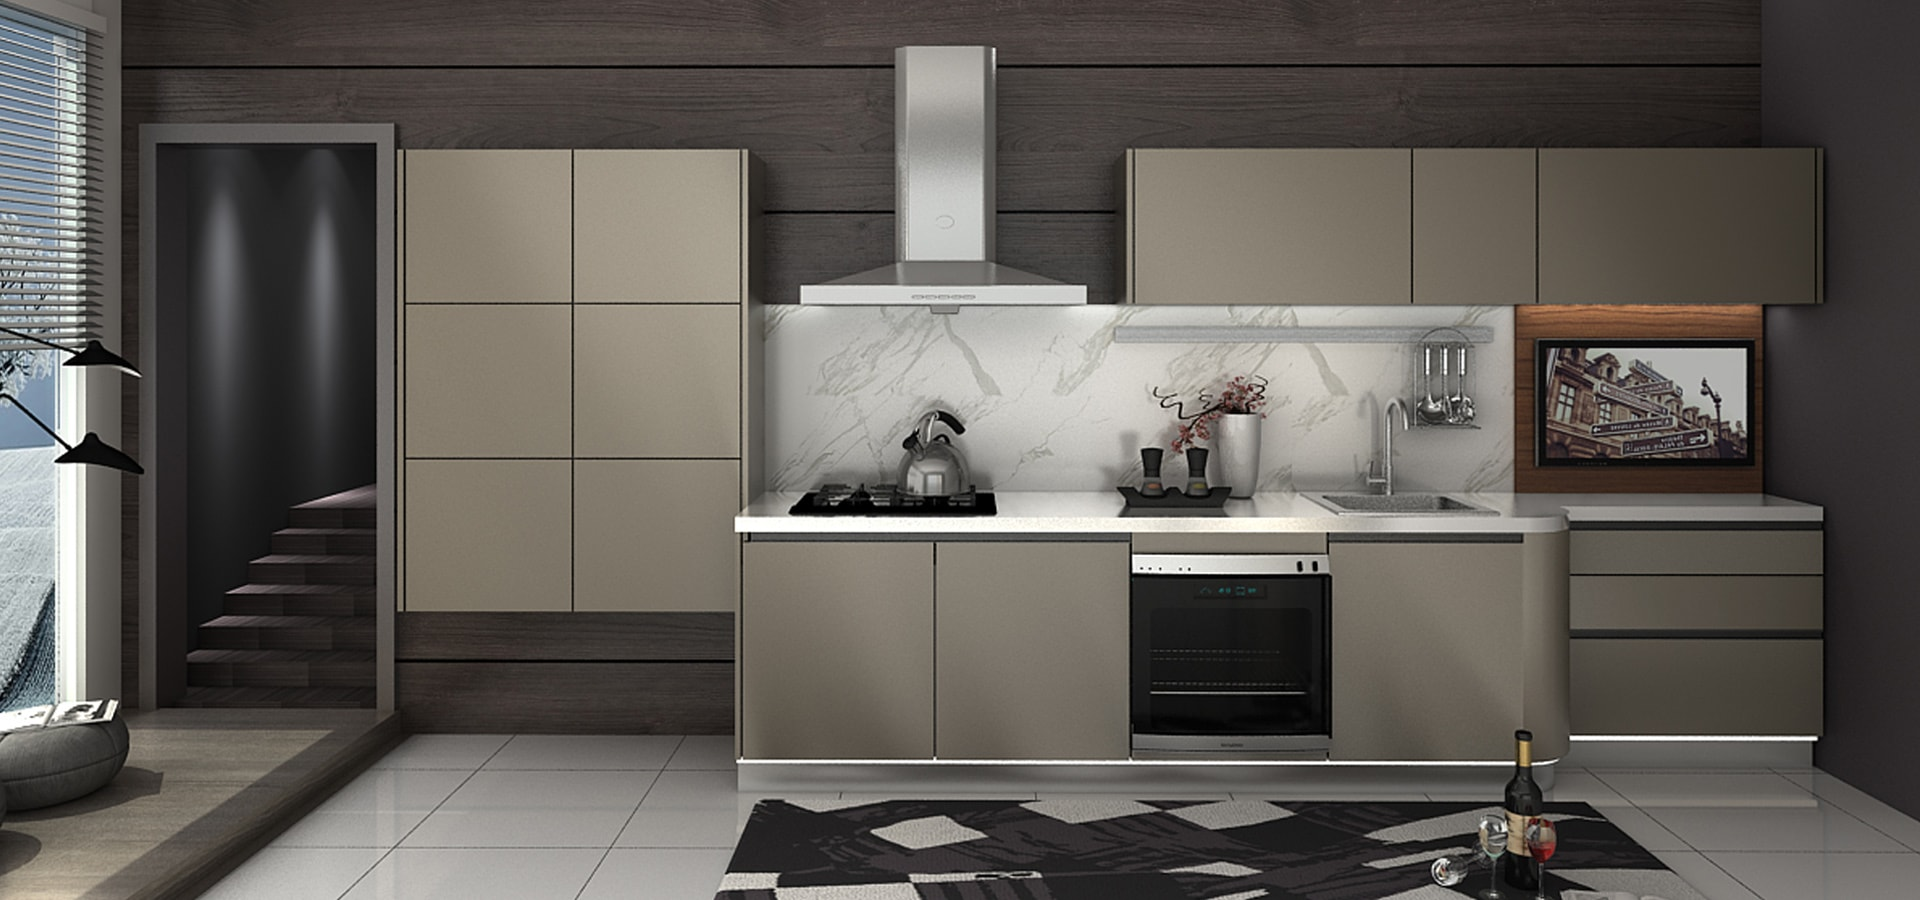 stainless steel kitchen cabinets manufacturers design india pictures custom cupboards